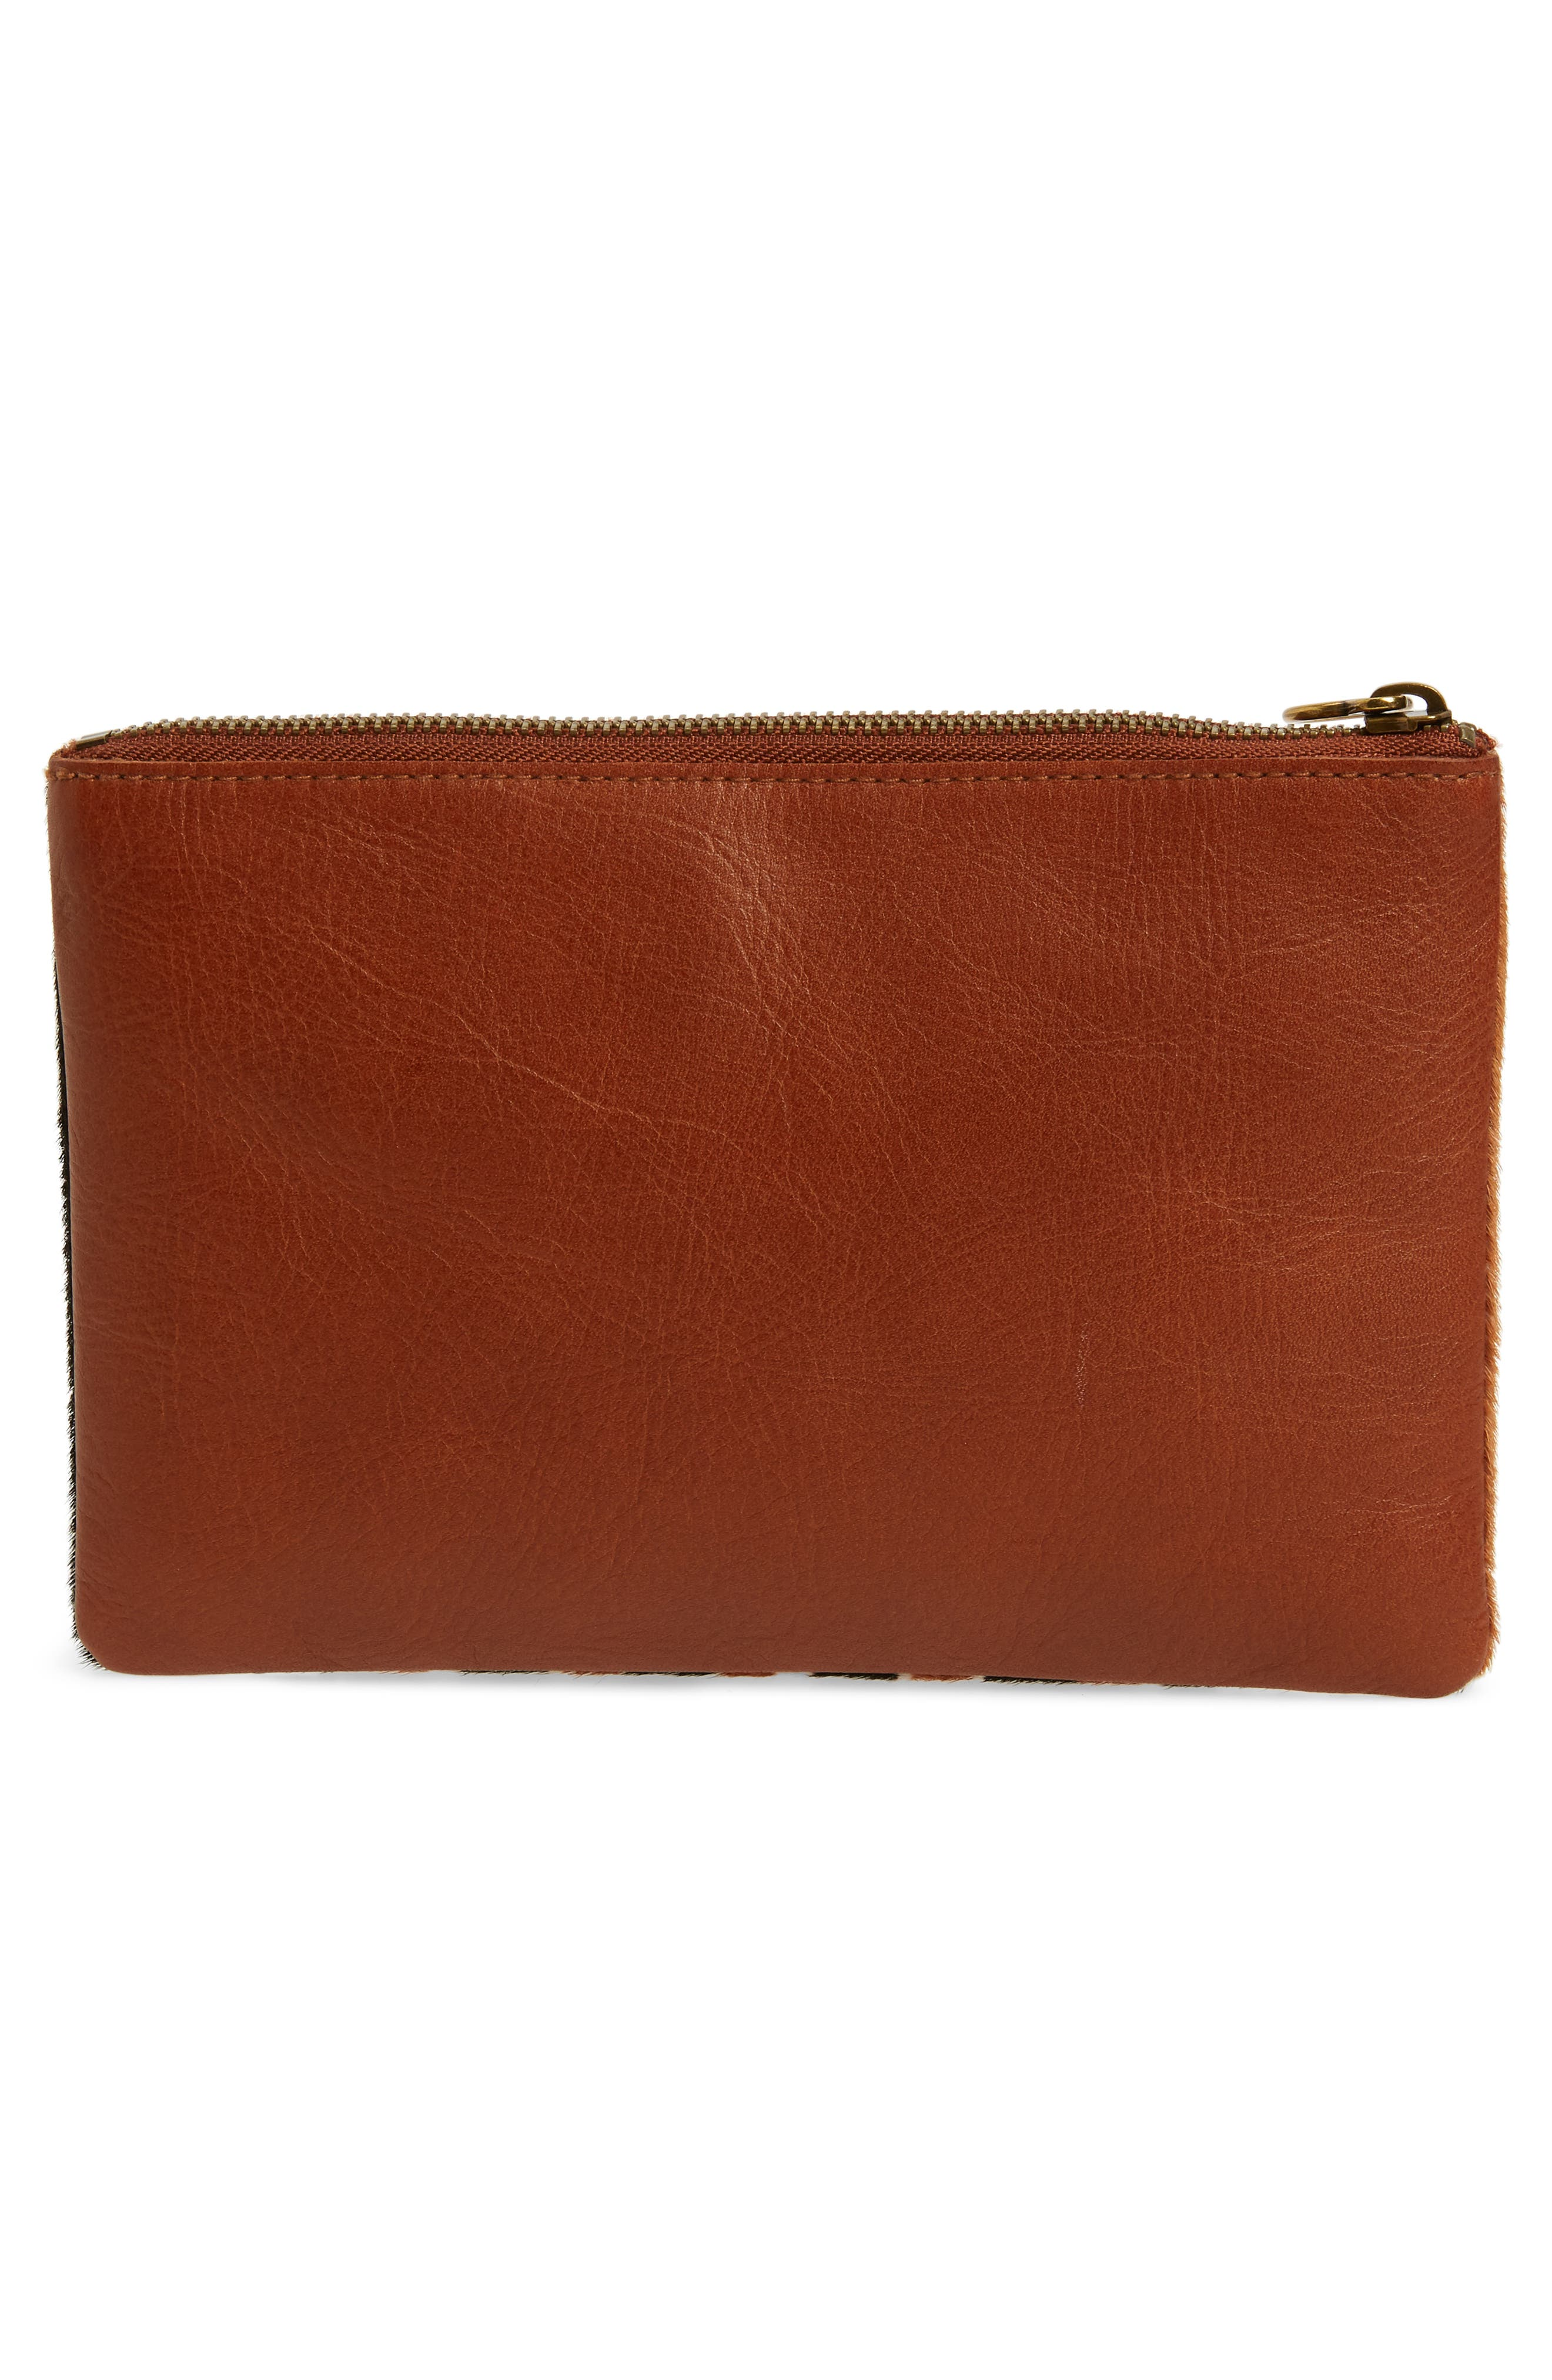 The Leather Pouch Clutch in Genuine Calf Hair,                             Alternate thumbnail 3, color,                             ACORN MULTI